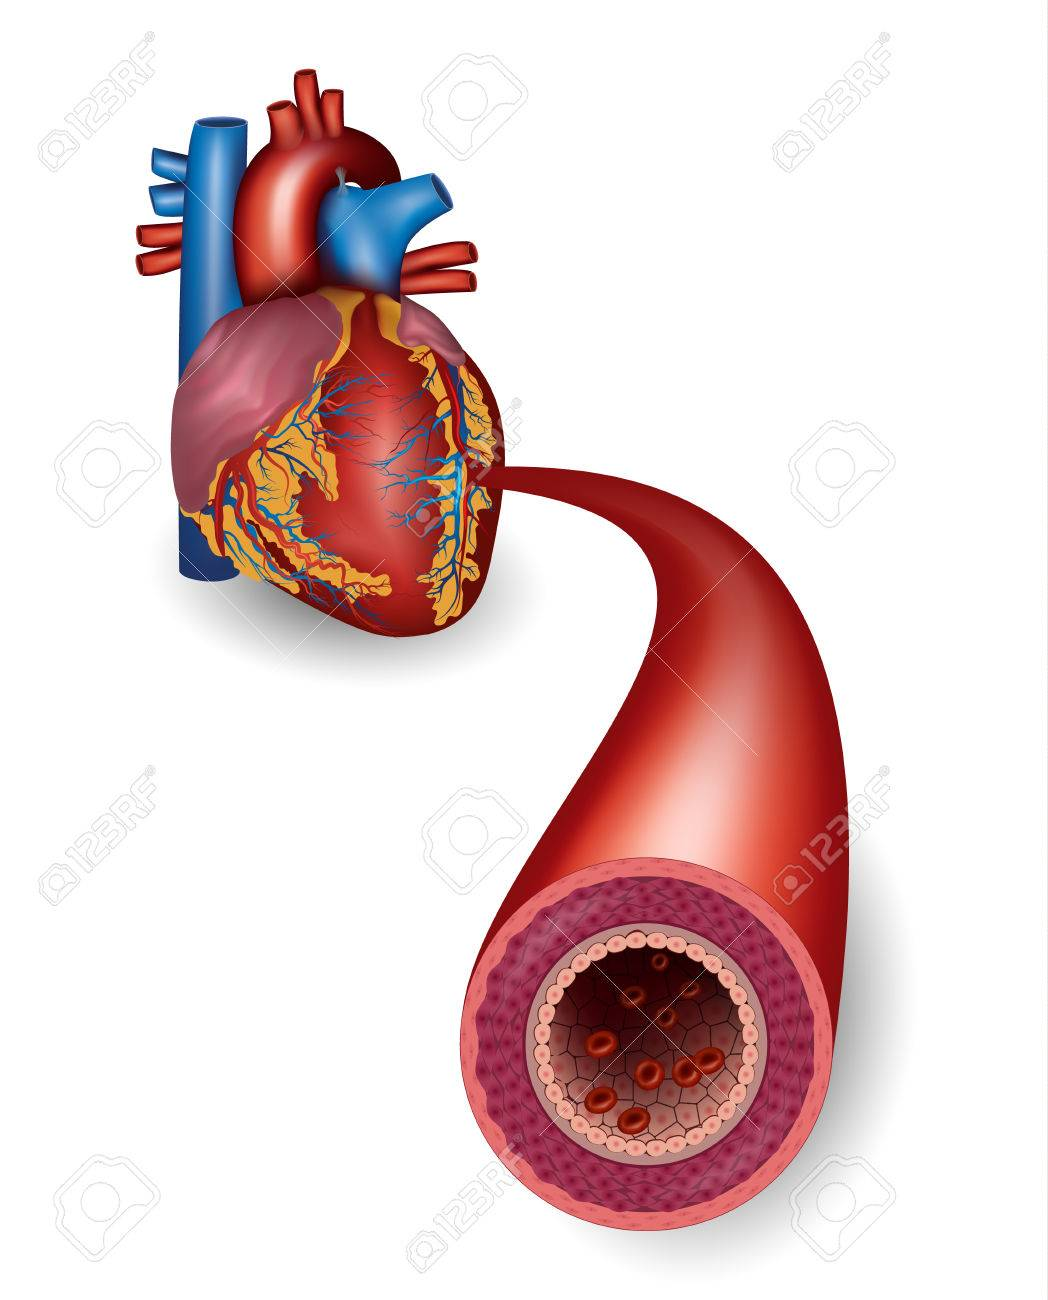 Healthy Artery And Heart Anatomy Royalty Free Cliparts Vectors And